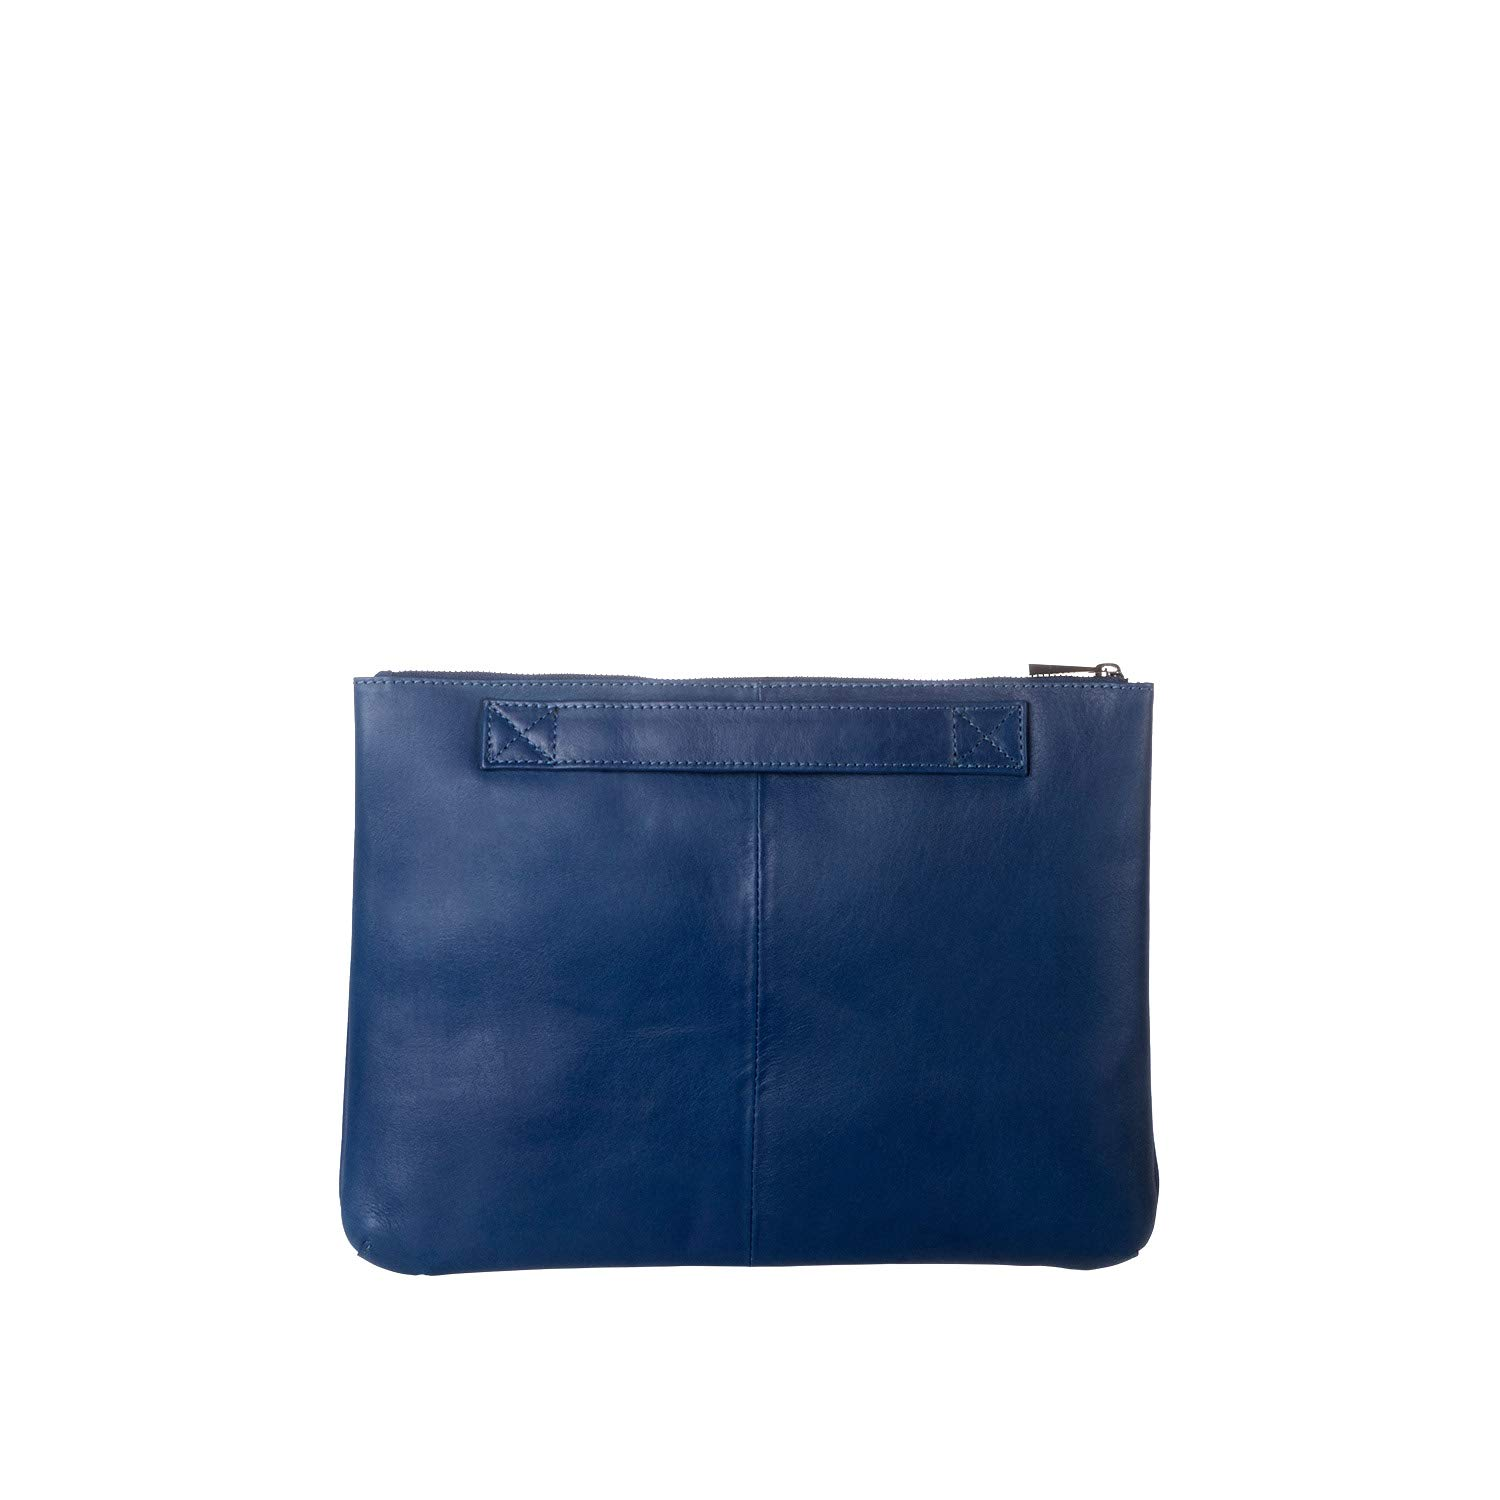 DUDU Clutch Bag Purse with Handle for ladies and men in Real Leather Slim & Large Handbag with Zipper closure - Isa - Blue by DuDu (Image #4)